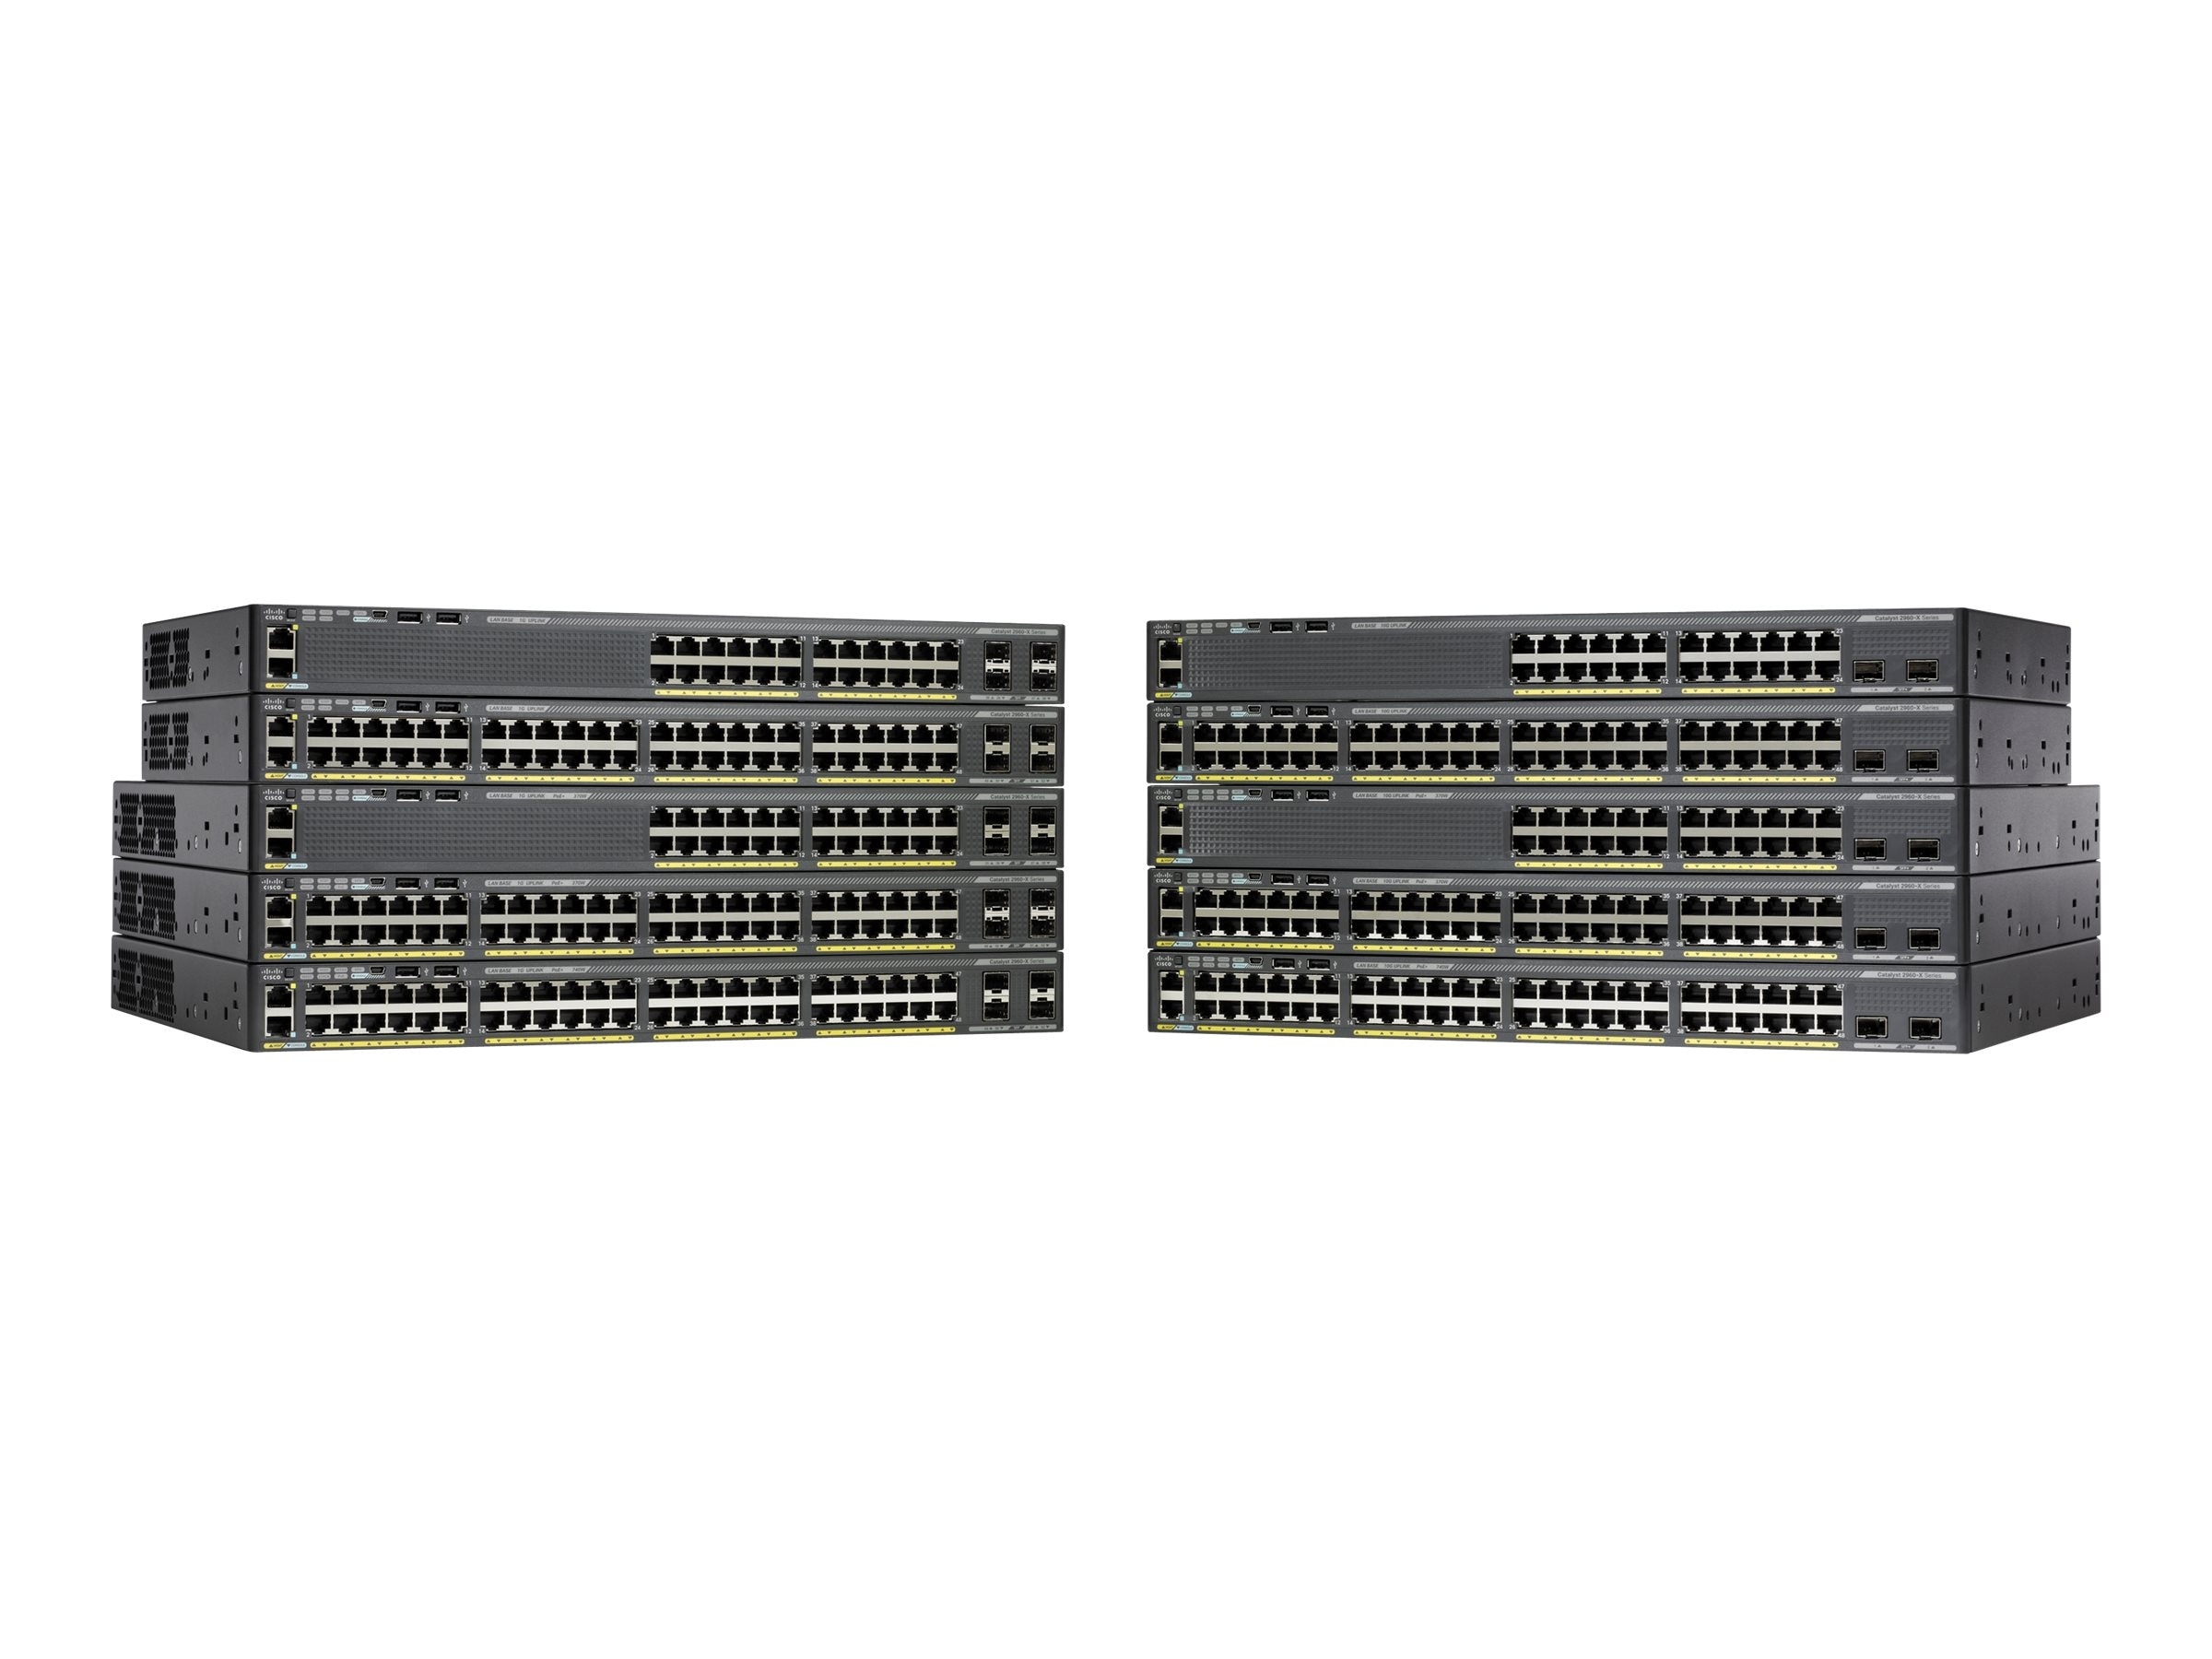 Cisco Catalyst 2960-XR 48 GIGE PoE  370W 4 X 1G